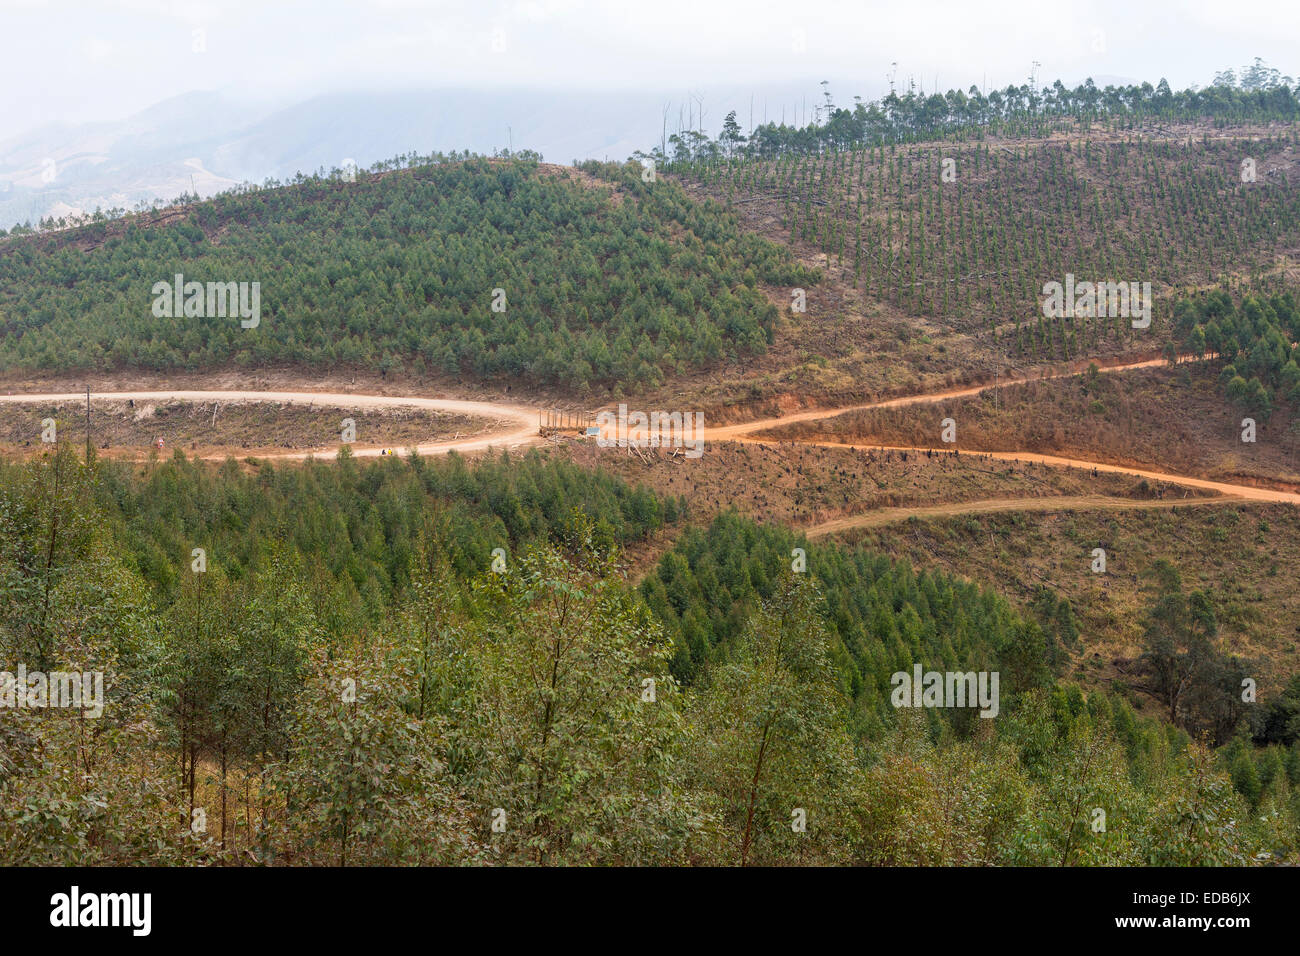 SWAZILAND, AFRICA - Roads through timber industry in Hhohho District Stock Photo